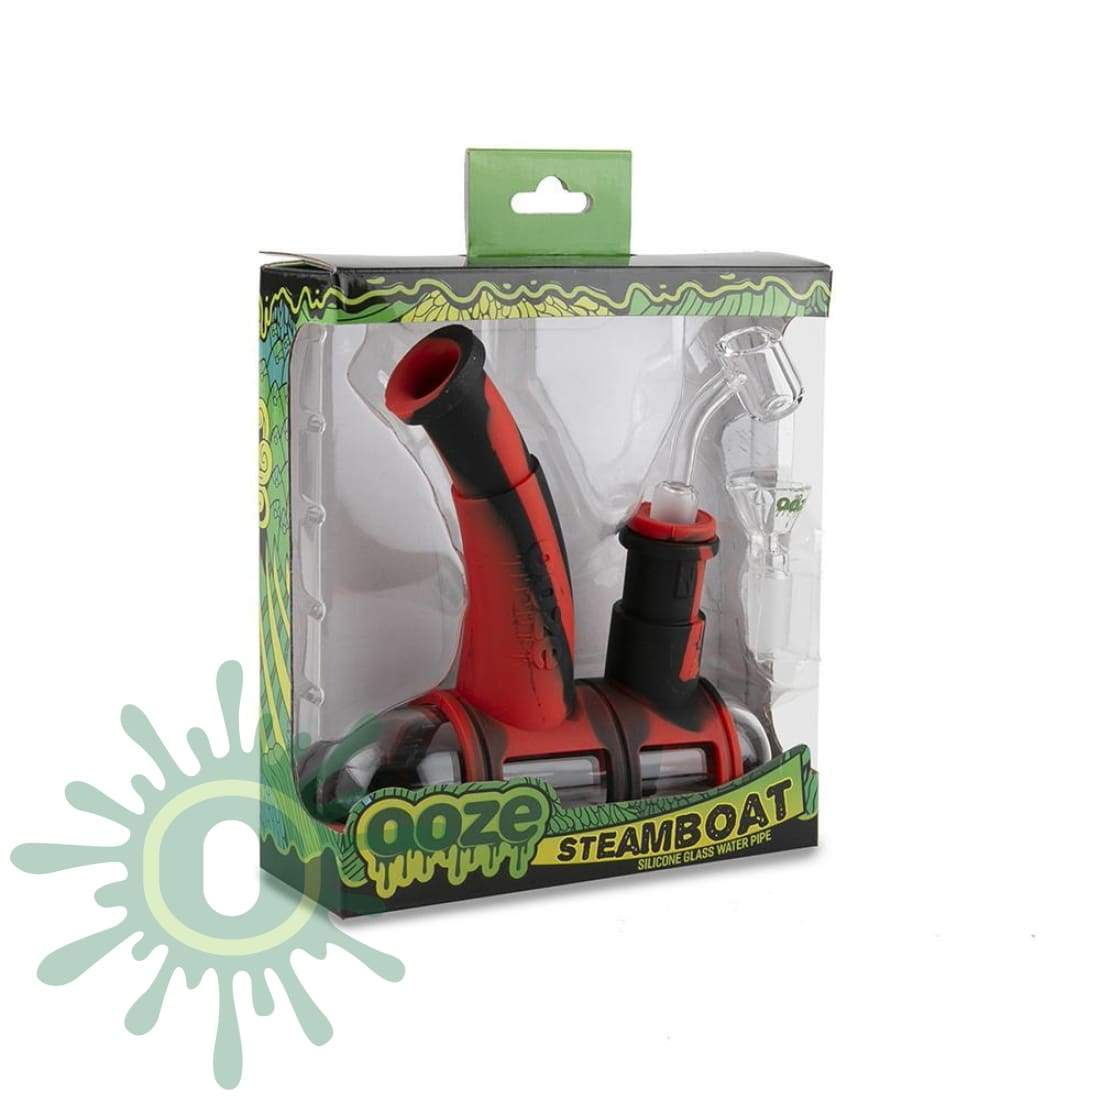 Ooze Steamboat Silicone Bubbler - Black / Red